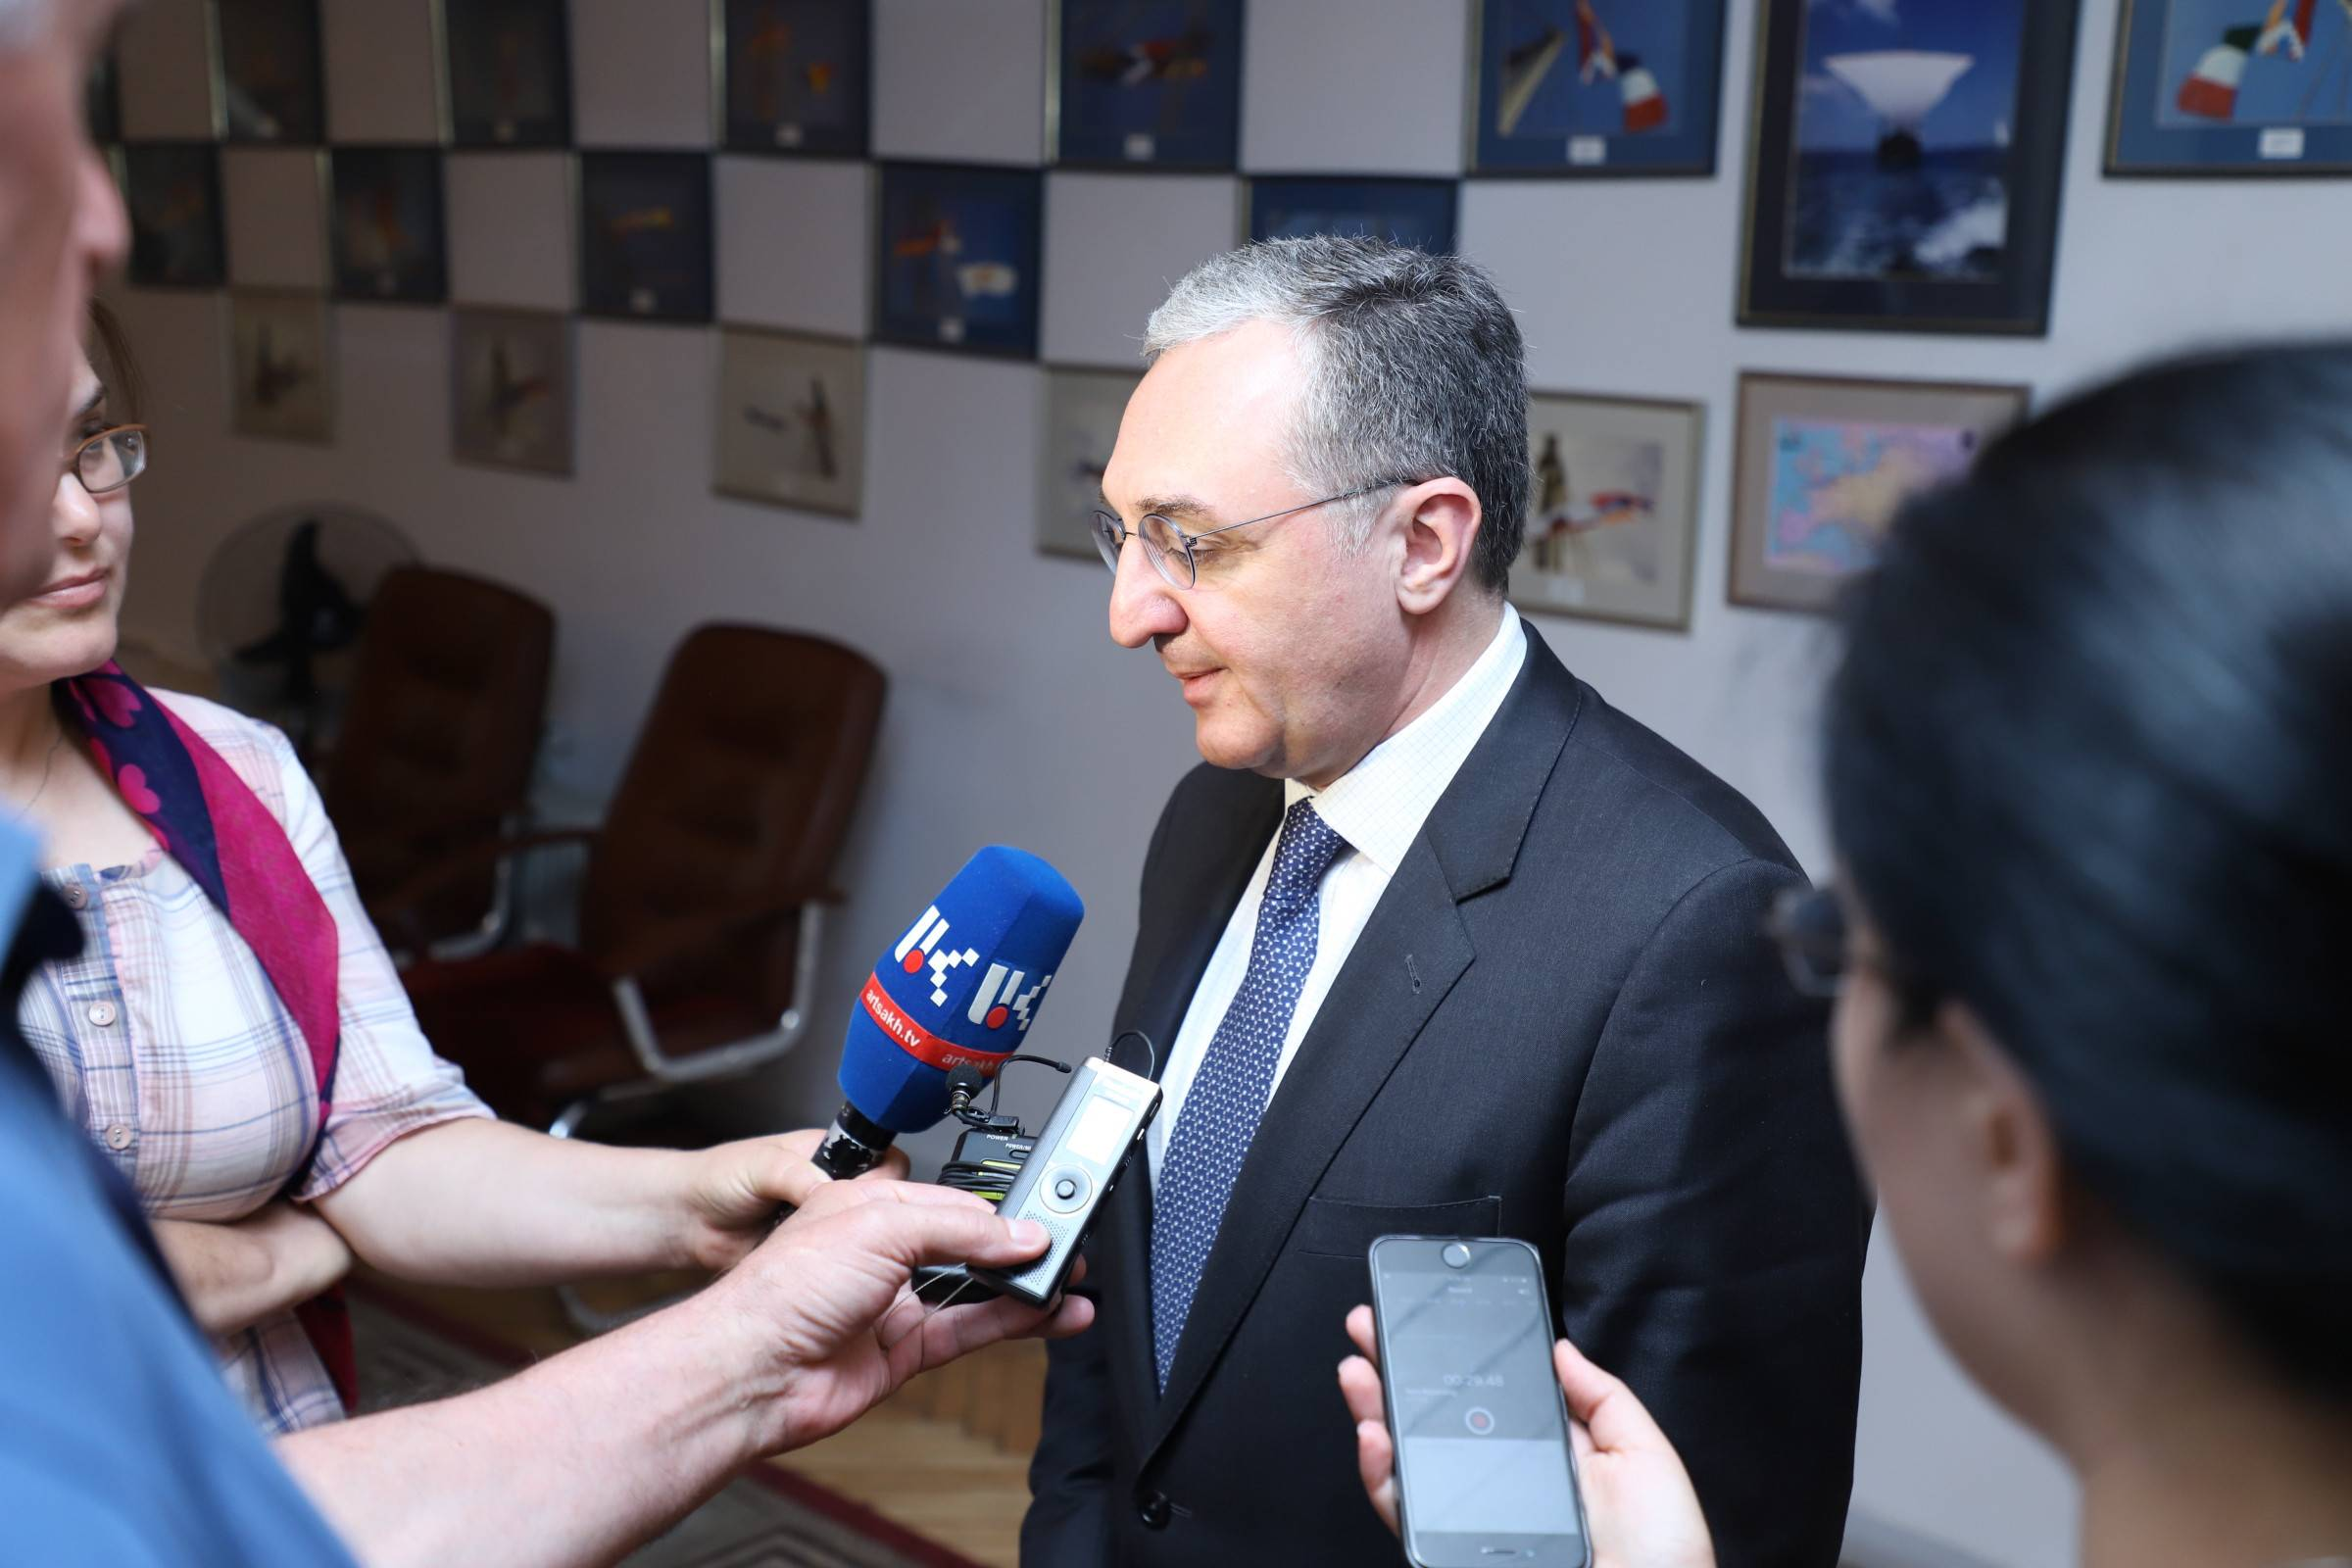 Briefing of Foreign Minister Zohrab Mnatsakanyan to the Artsakh media